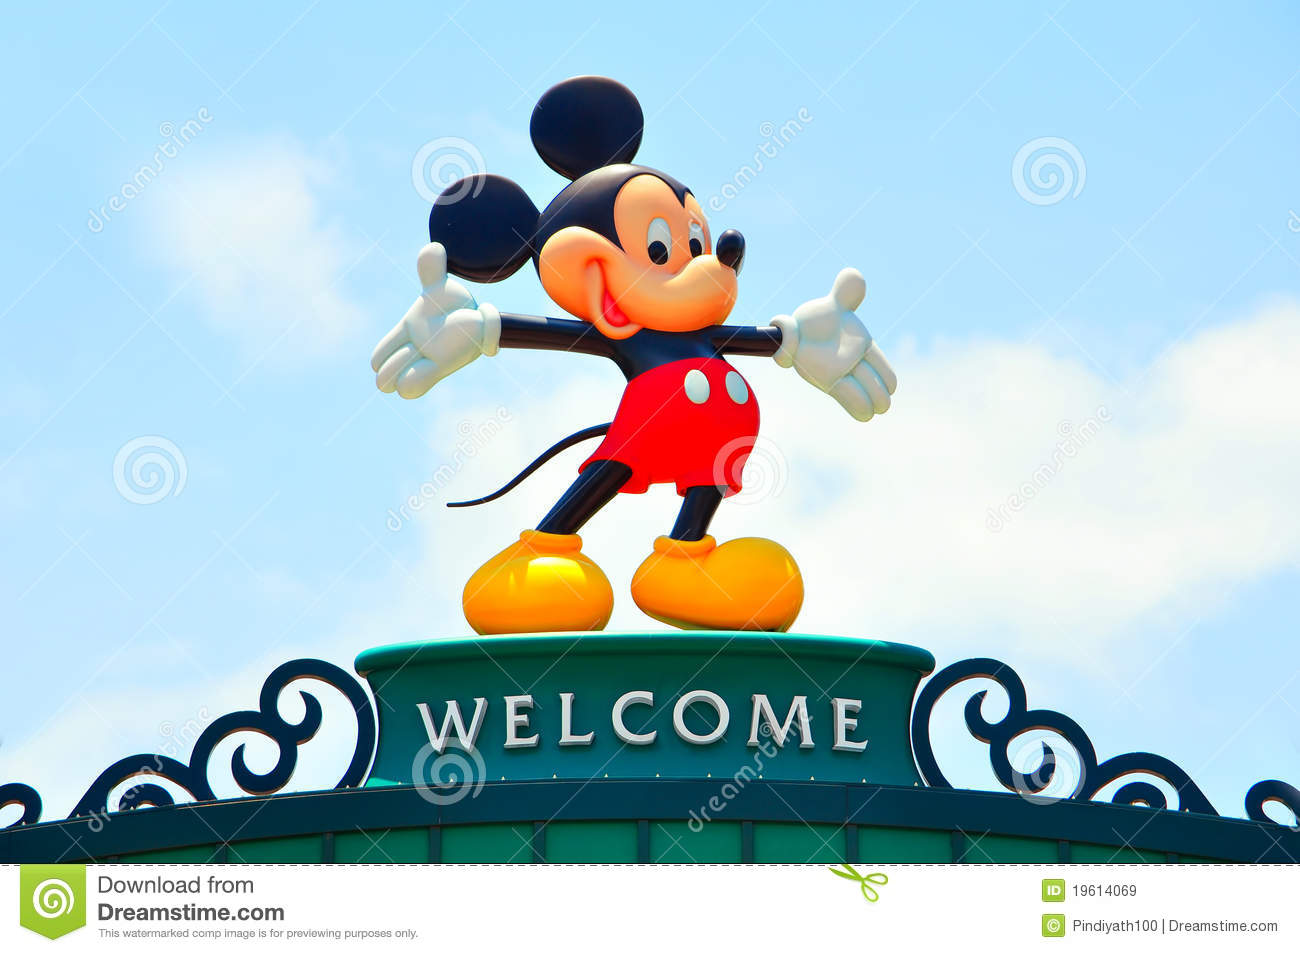 Large Figurine Of Mickey Mouse On The Welcome Banner With Natural